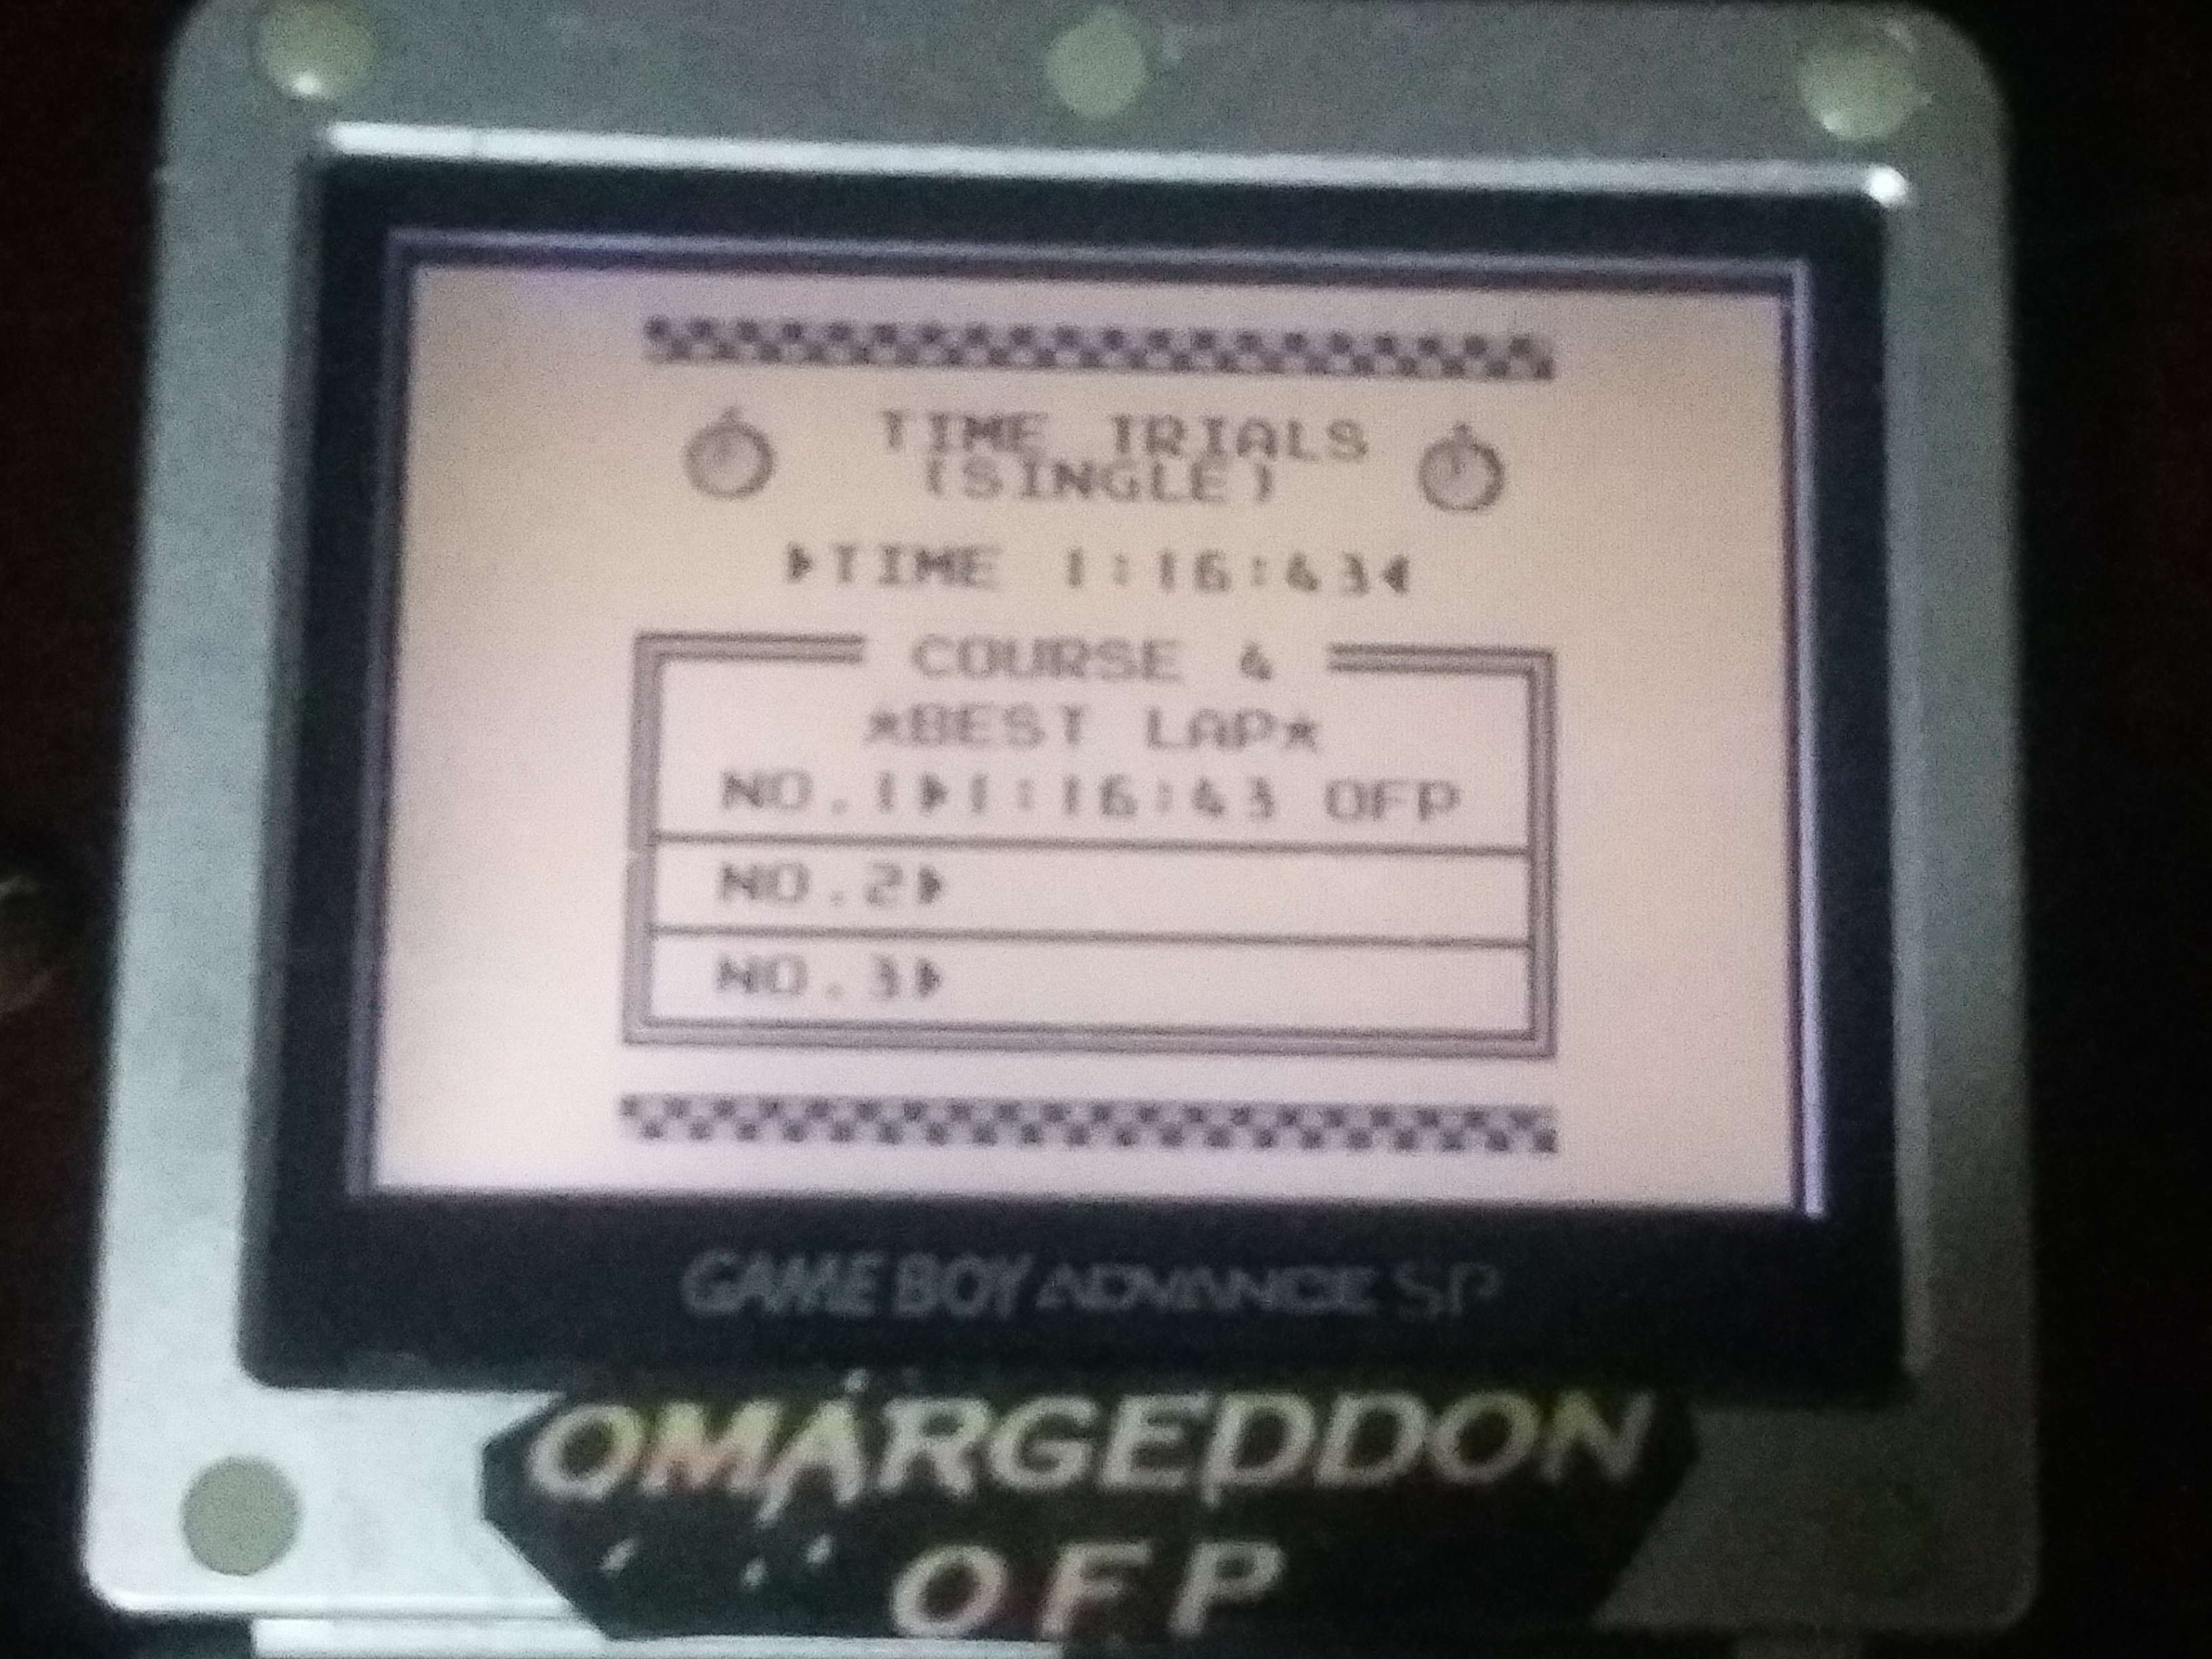 omargeddon: F-1 Race: Time Trials: Single: Portugal [Best Lap] (Game Boy) 0:01:16.43 points on 2018-01-04 00:50:51